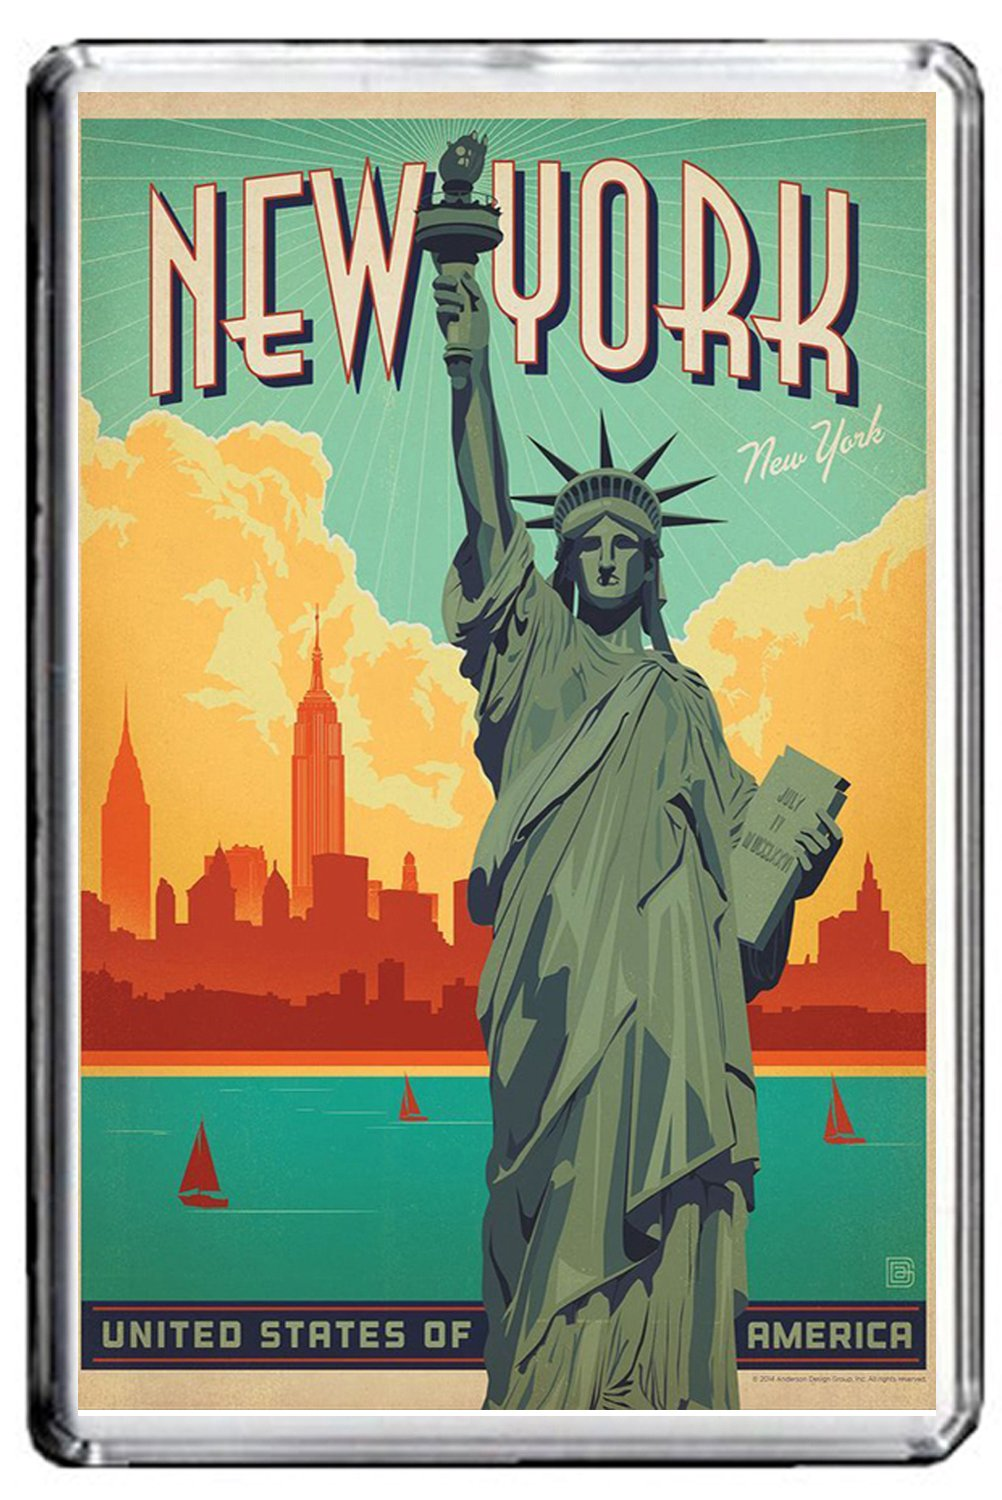 CFL B218 NEW YORK FRIDGE MAGNET UNITED STATES VINTAGE TRAVEL PHOTO MAGNETICA CALAMITA FRIGO